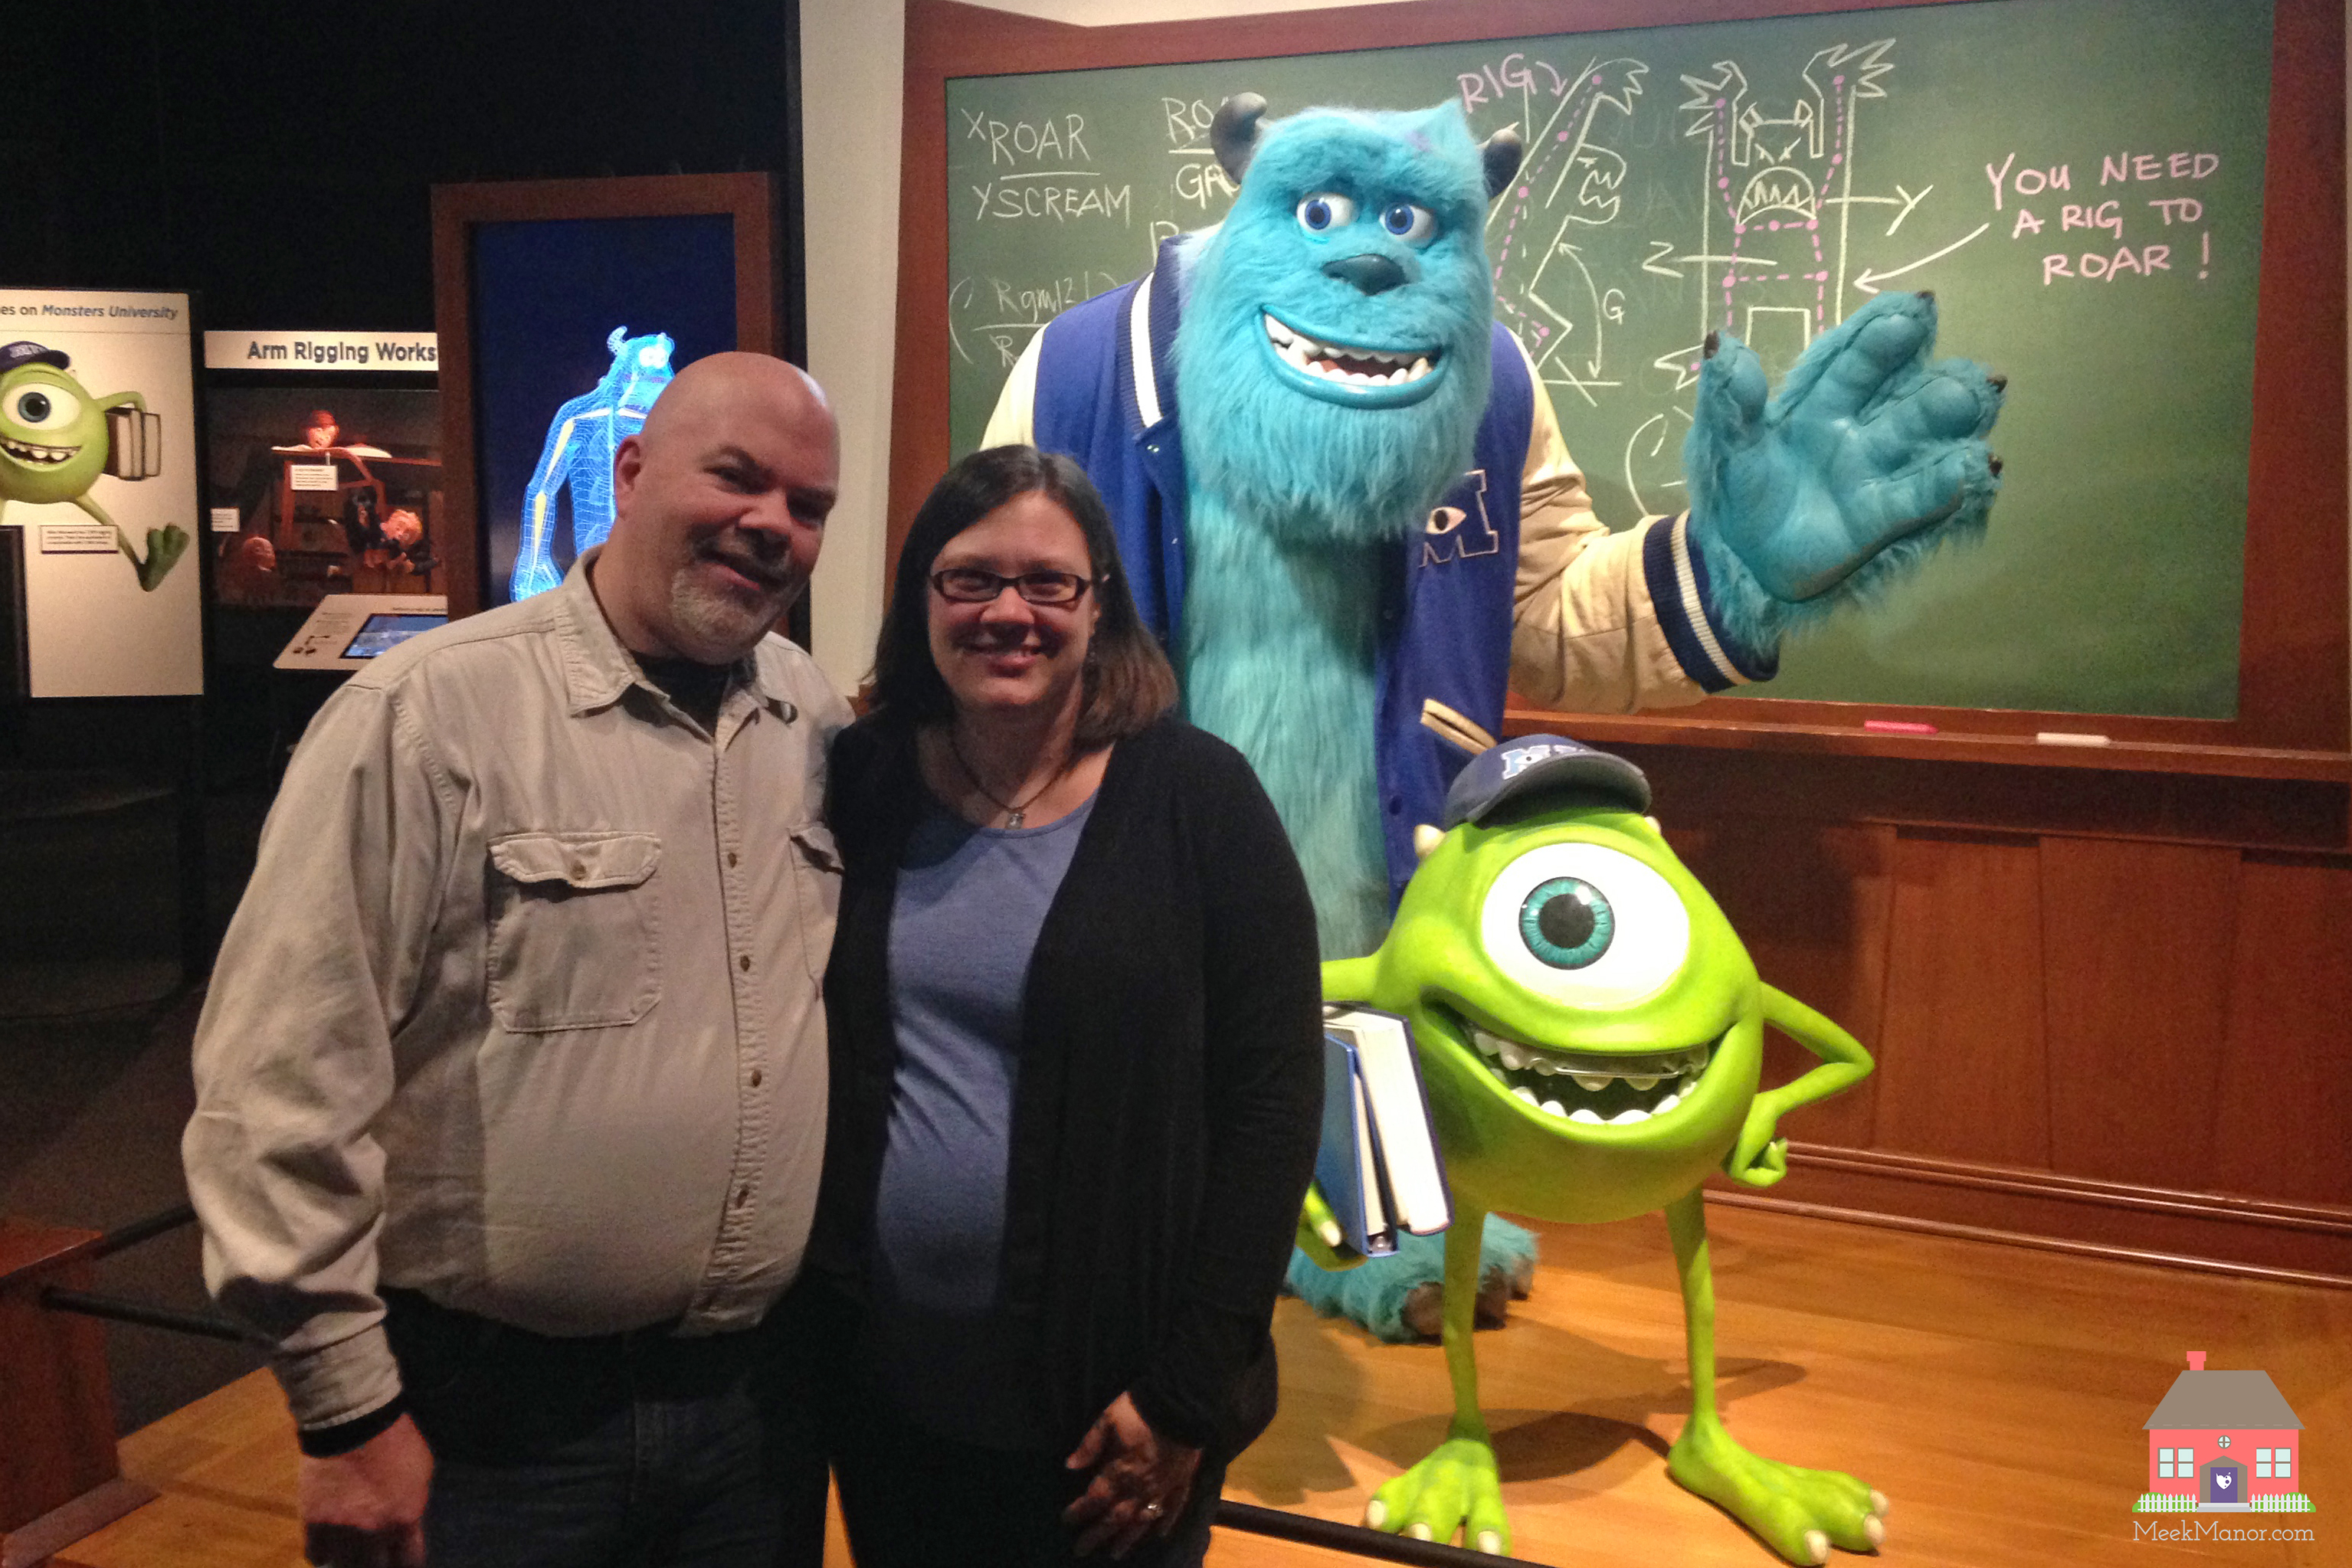 Lloyd and Valerie at Pixar Exhibit